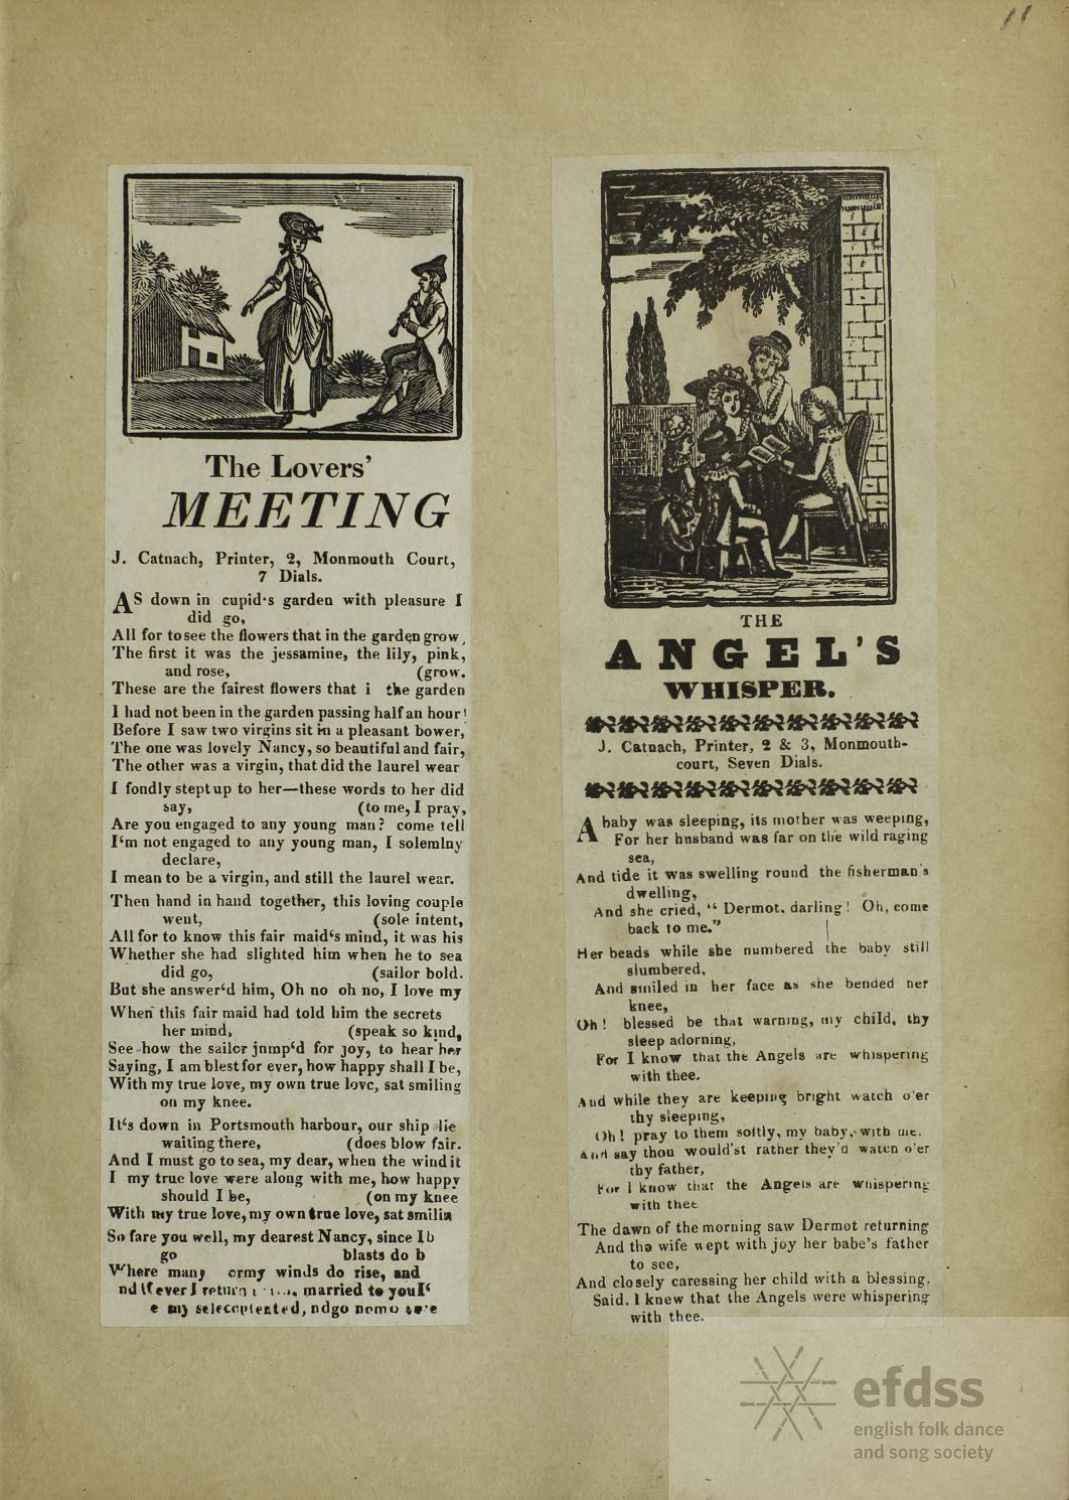 The Lovers' Meeting - broadside ballad  from the Frank Kidson Manuscript Collection, via the EFDSS Full English archive.